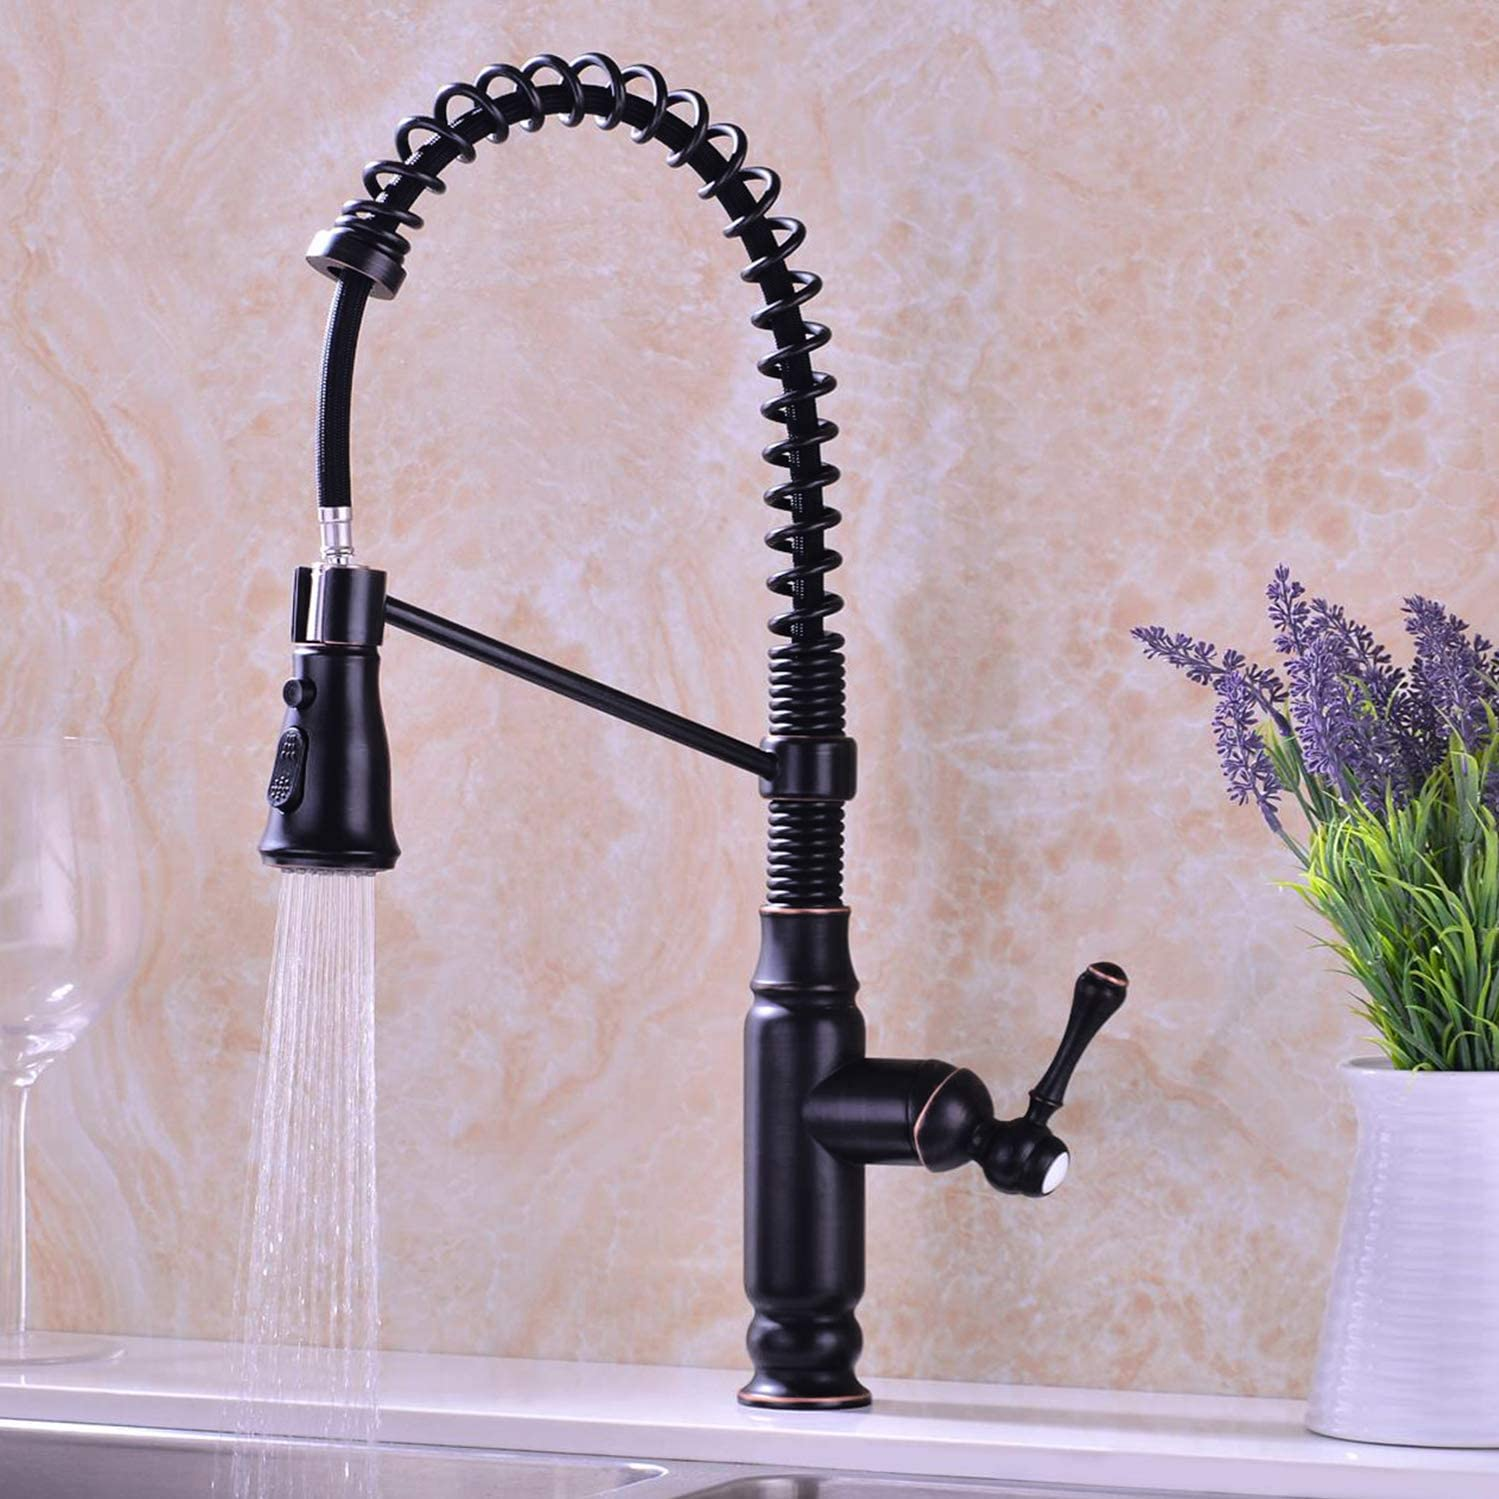 KVADRAT Pull Out Kitchen Faucet Oil Rubbed Bronze Spring Single Handle High Arc Dual Function with Pull Down Spray Head